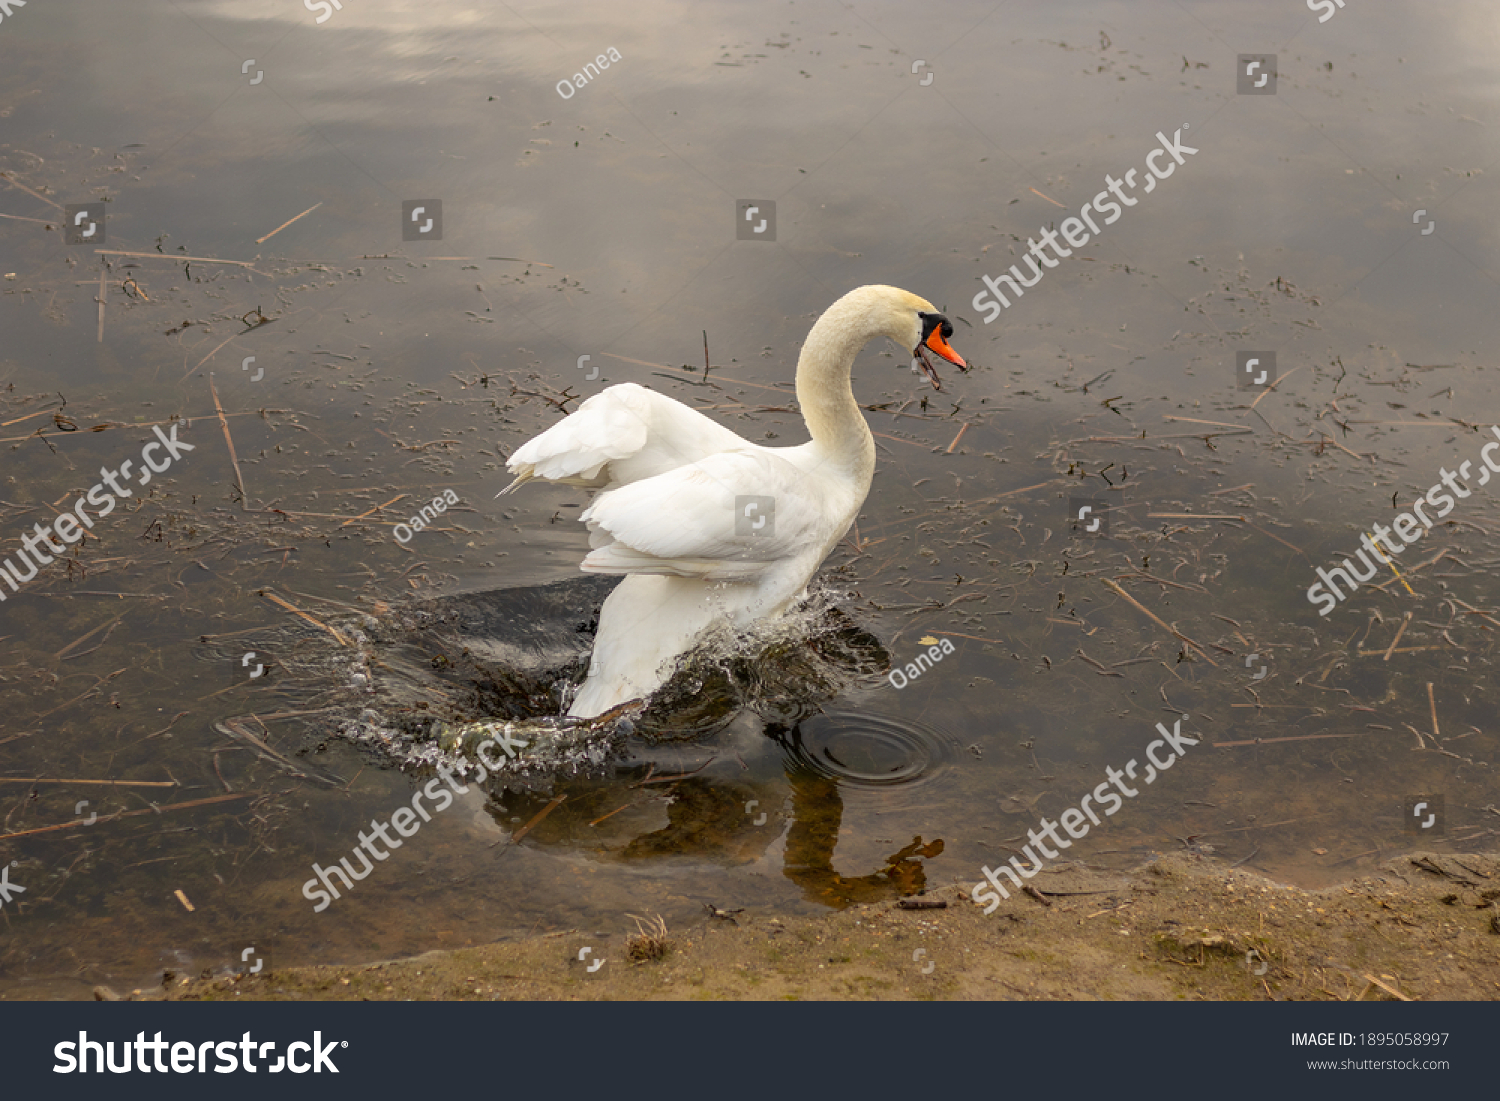 stock-photo-angry-swan-jumping-on-the-wa